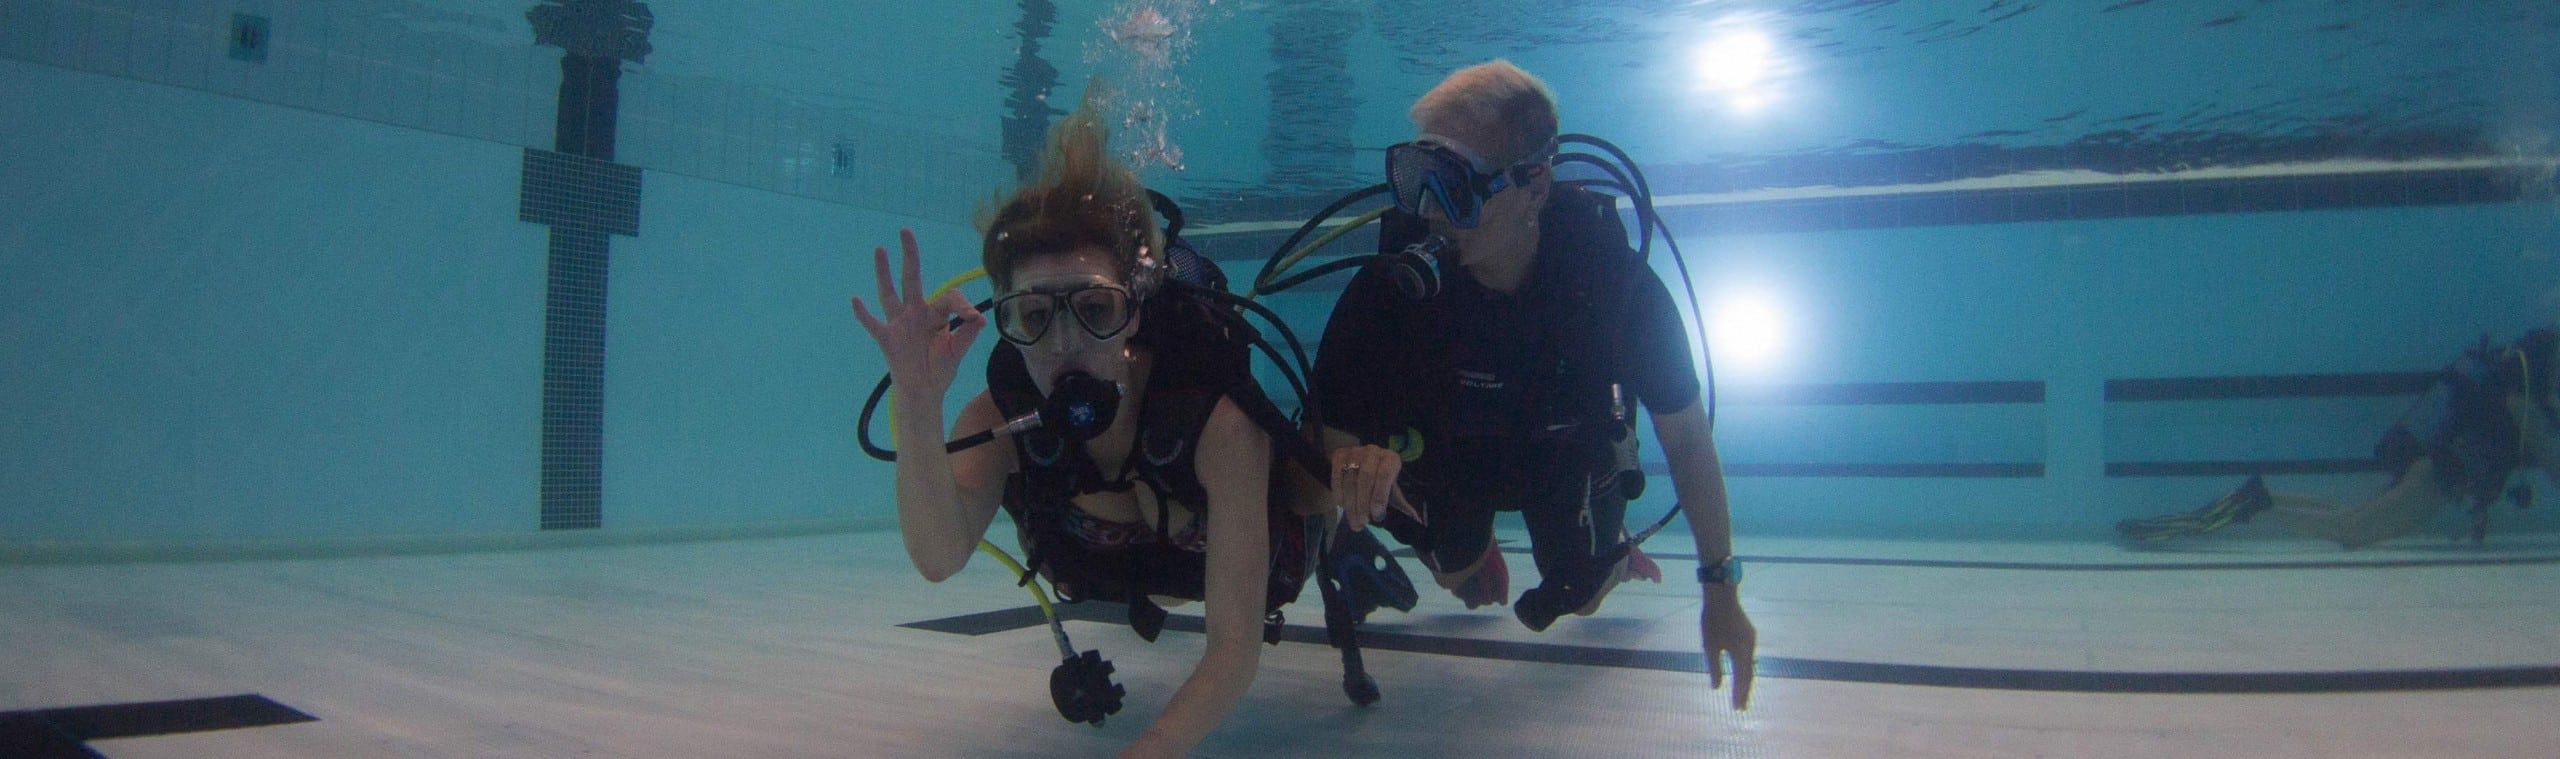 ABC Dive - Proefduik - Introductieduik Almere